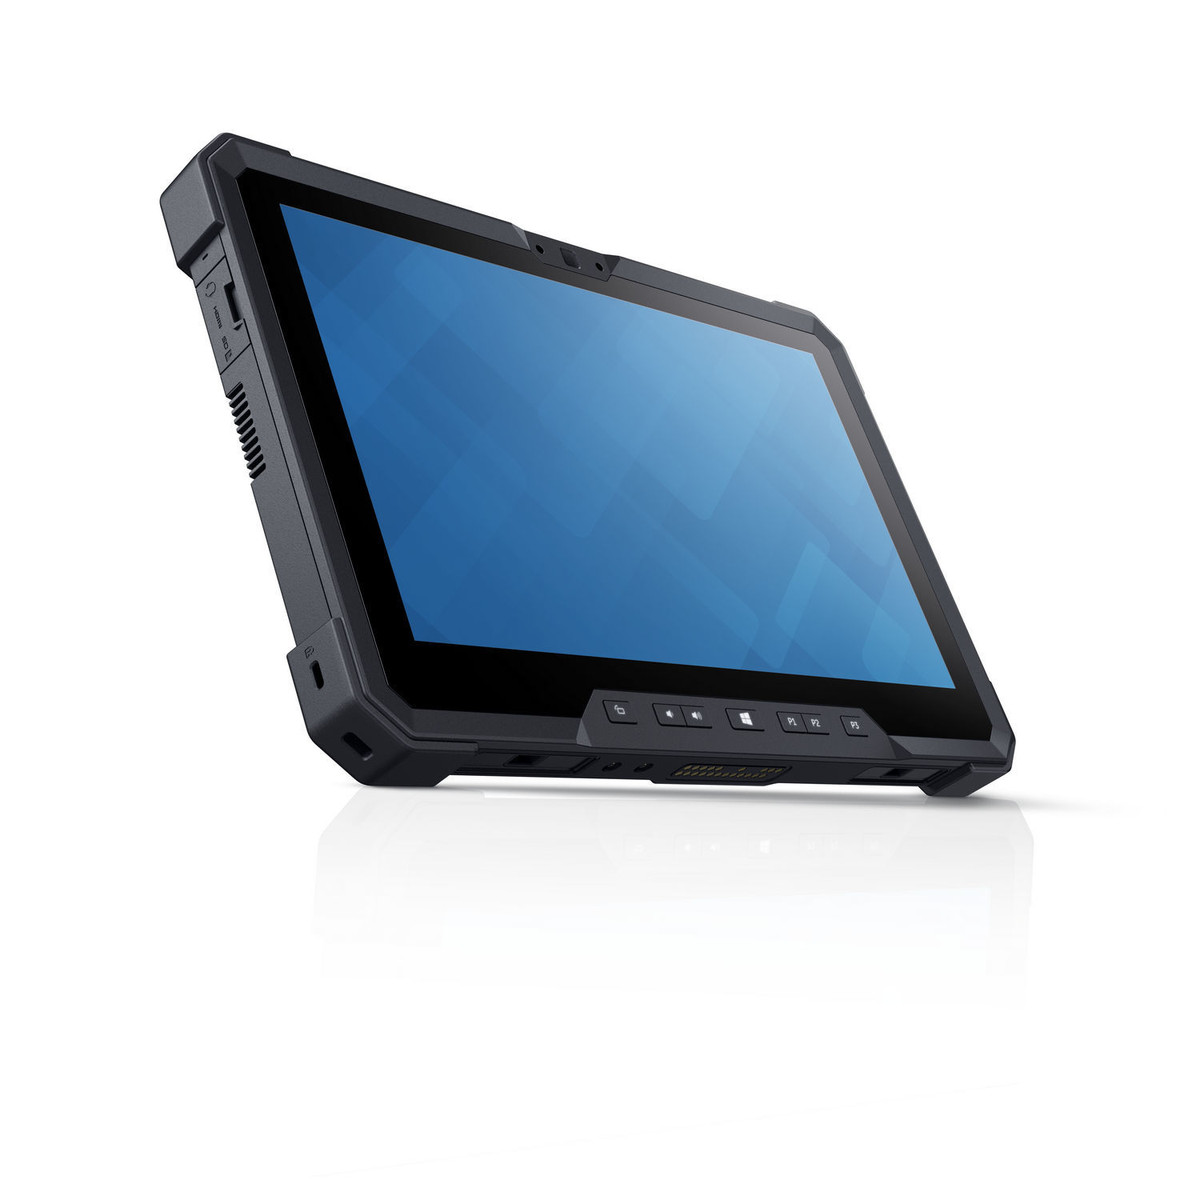 dell launches latitude 12 rugged tablet - notebookcheck news